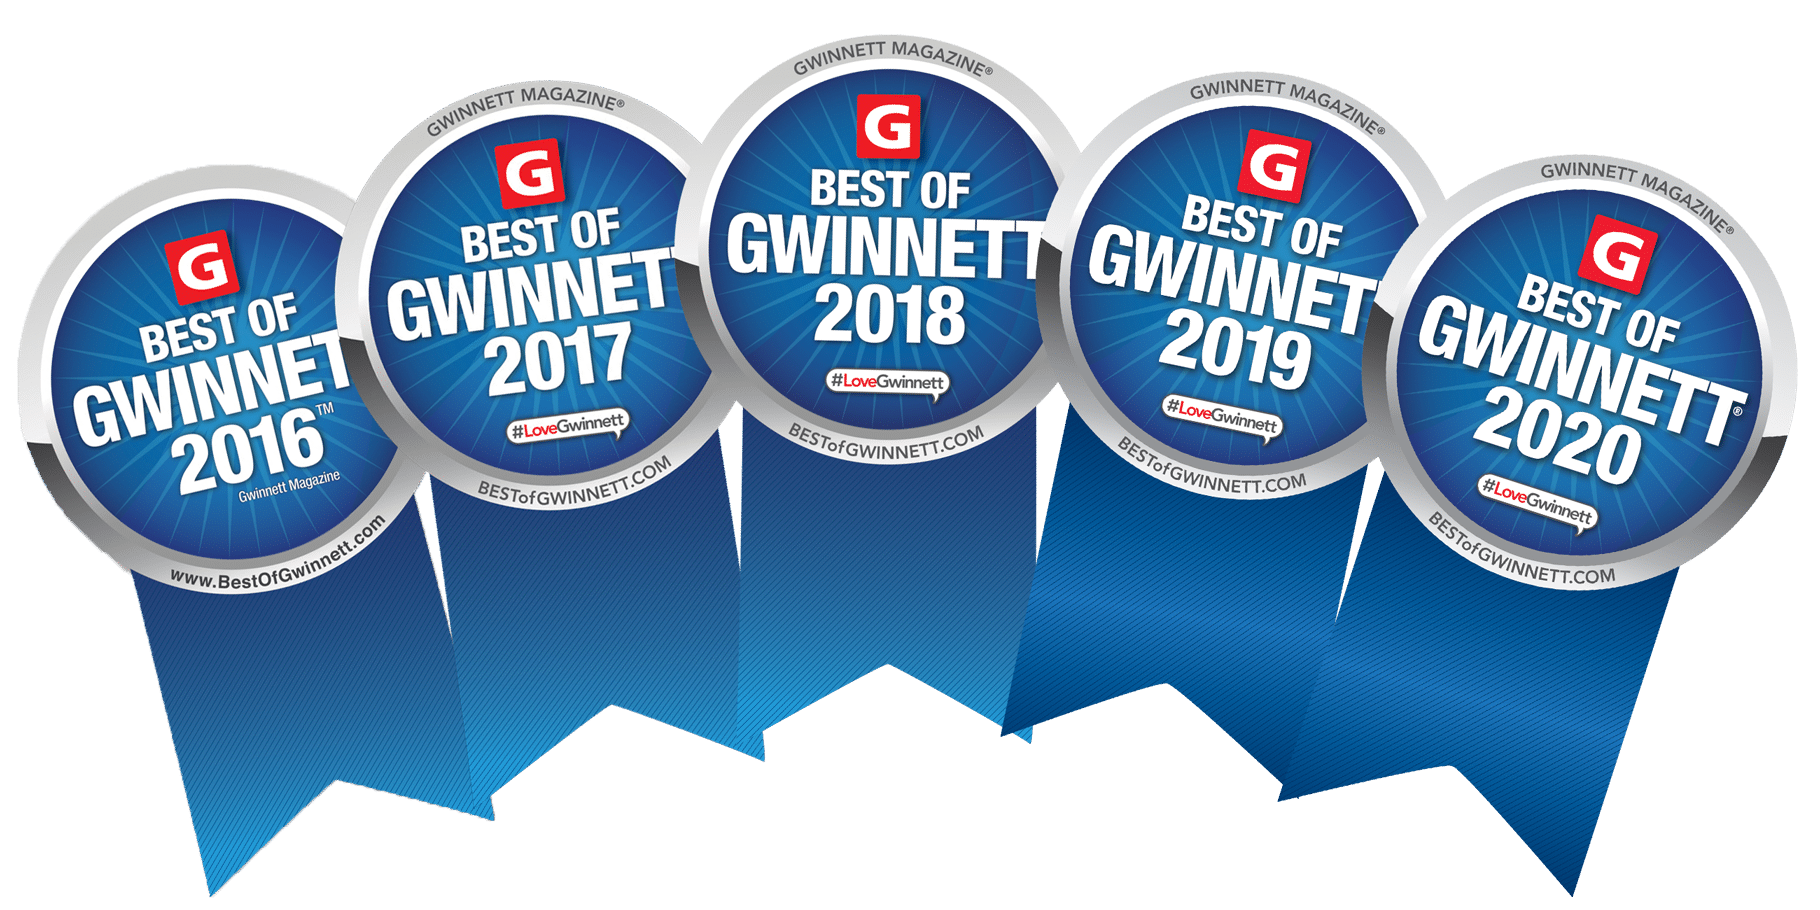 Best of Gwinnett 2019!